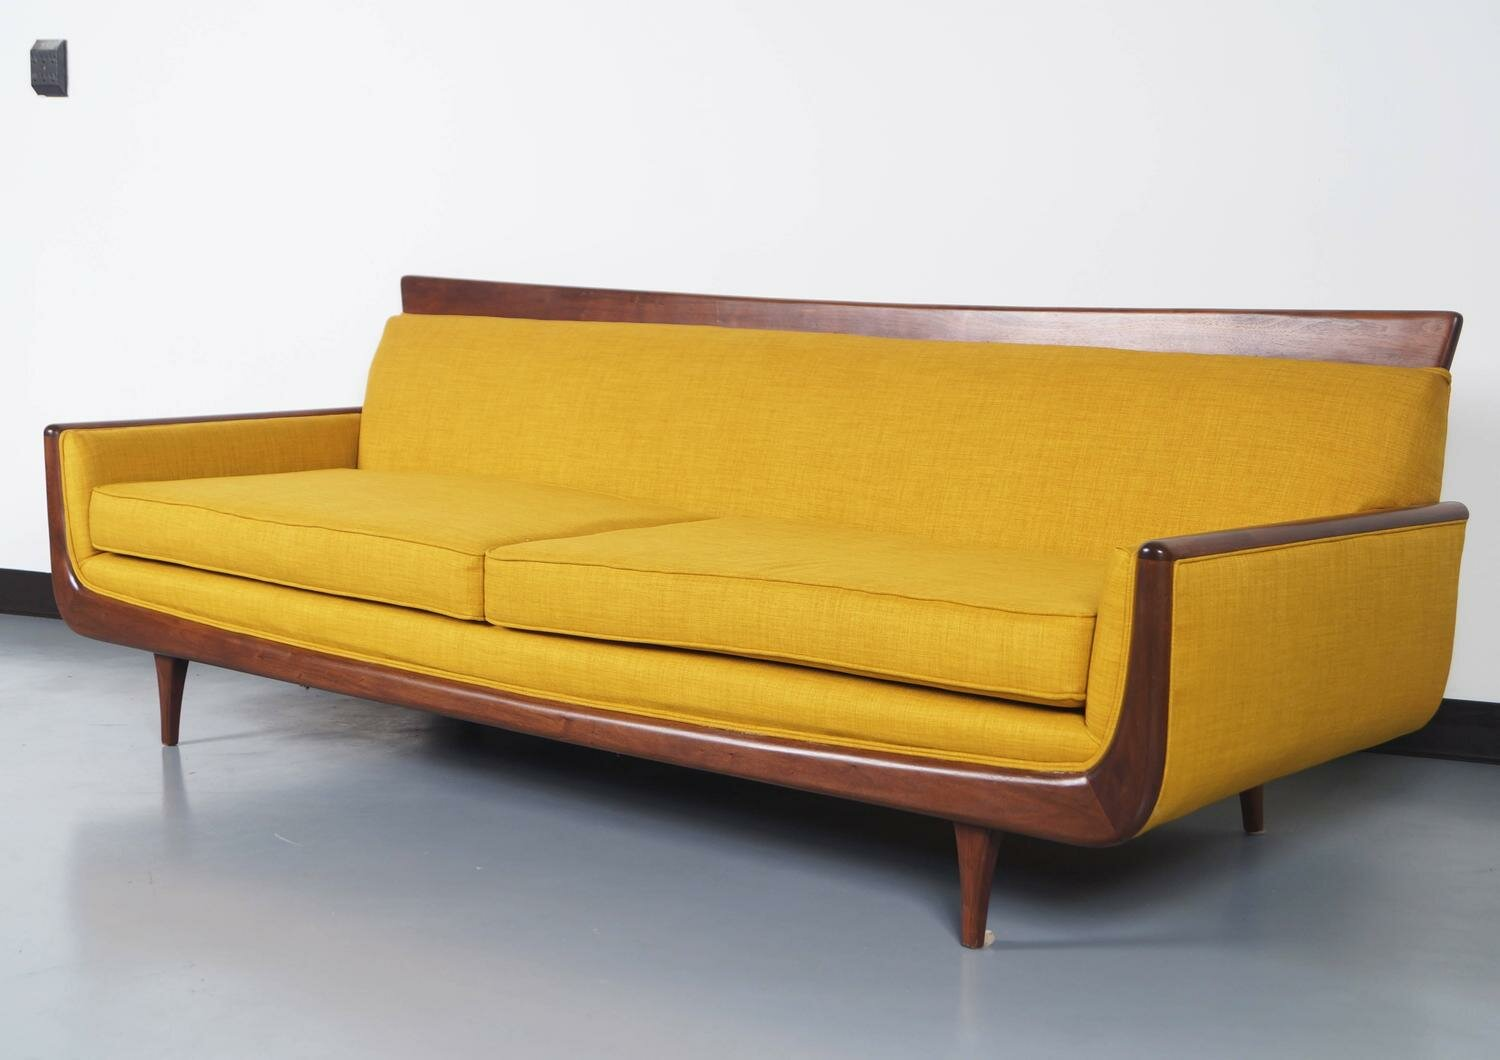 Midcentury modern sofas thesofa for Furniture news